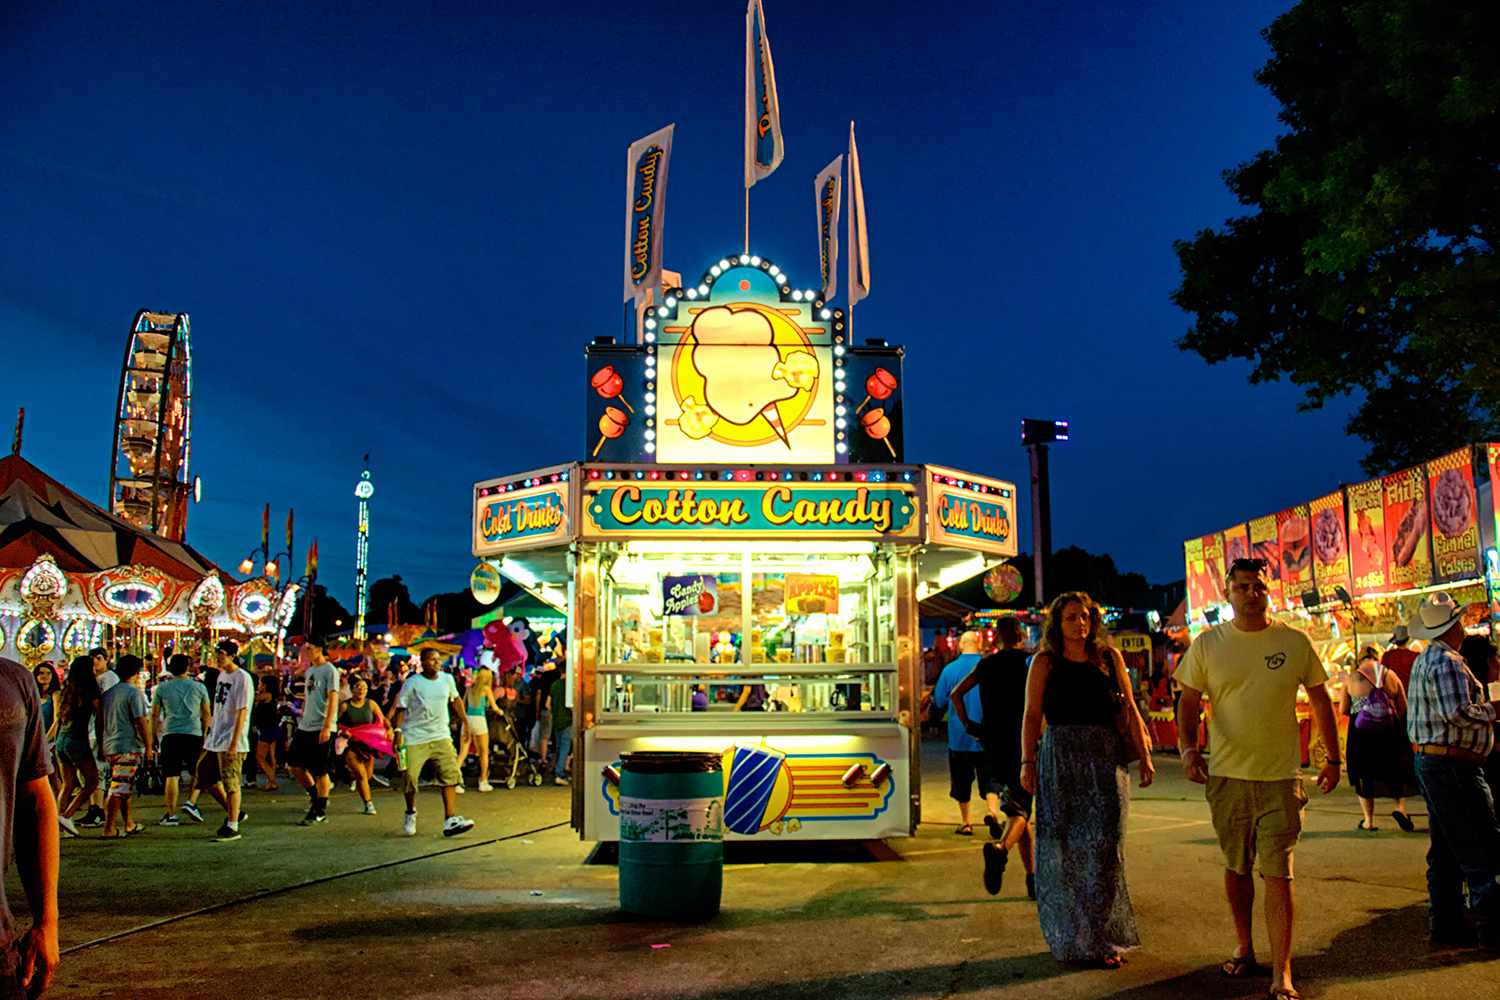 The Iowa State Fair Midway